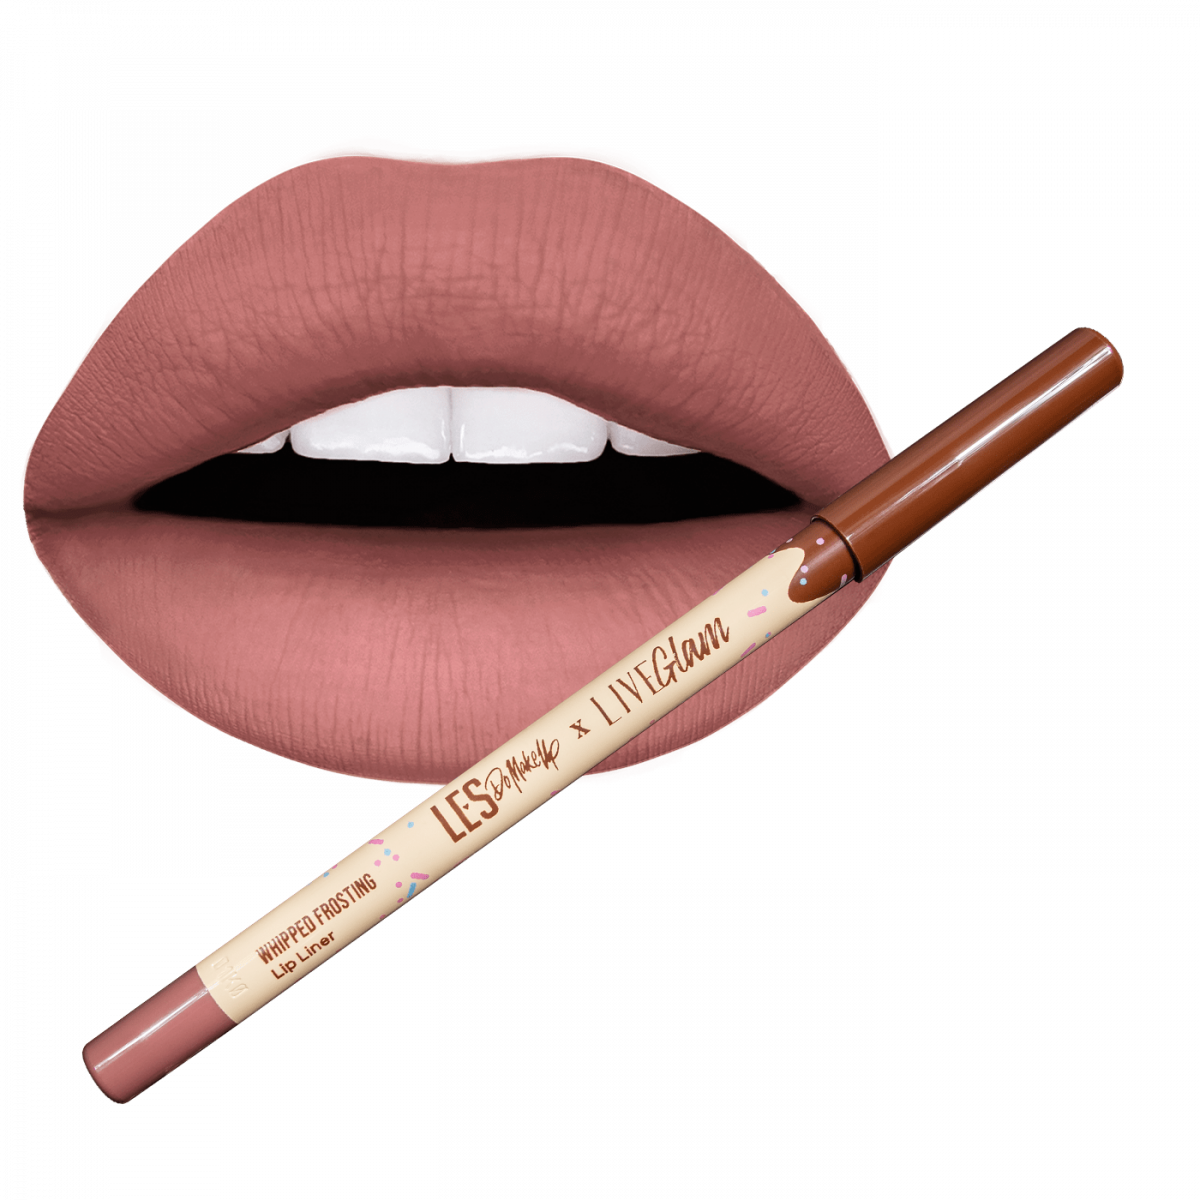 Les Do Makeup lip liner whipped frosting